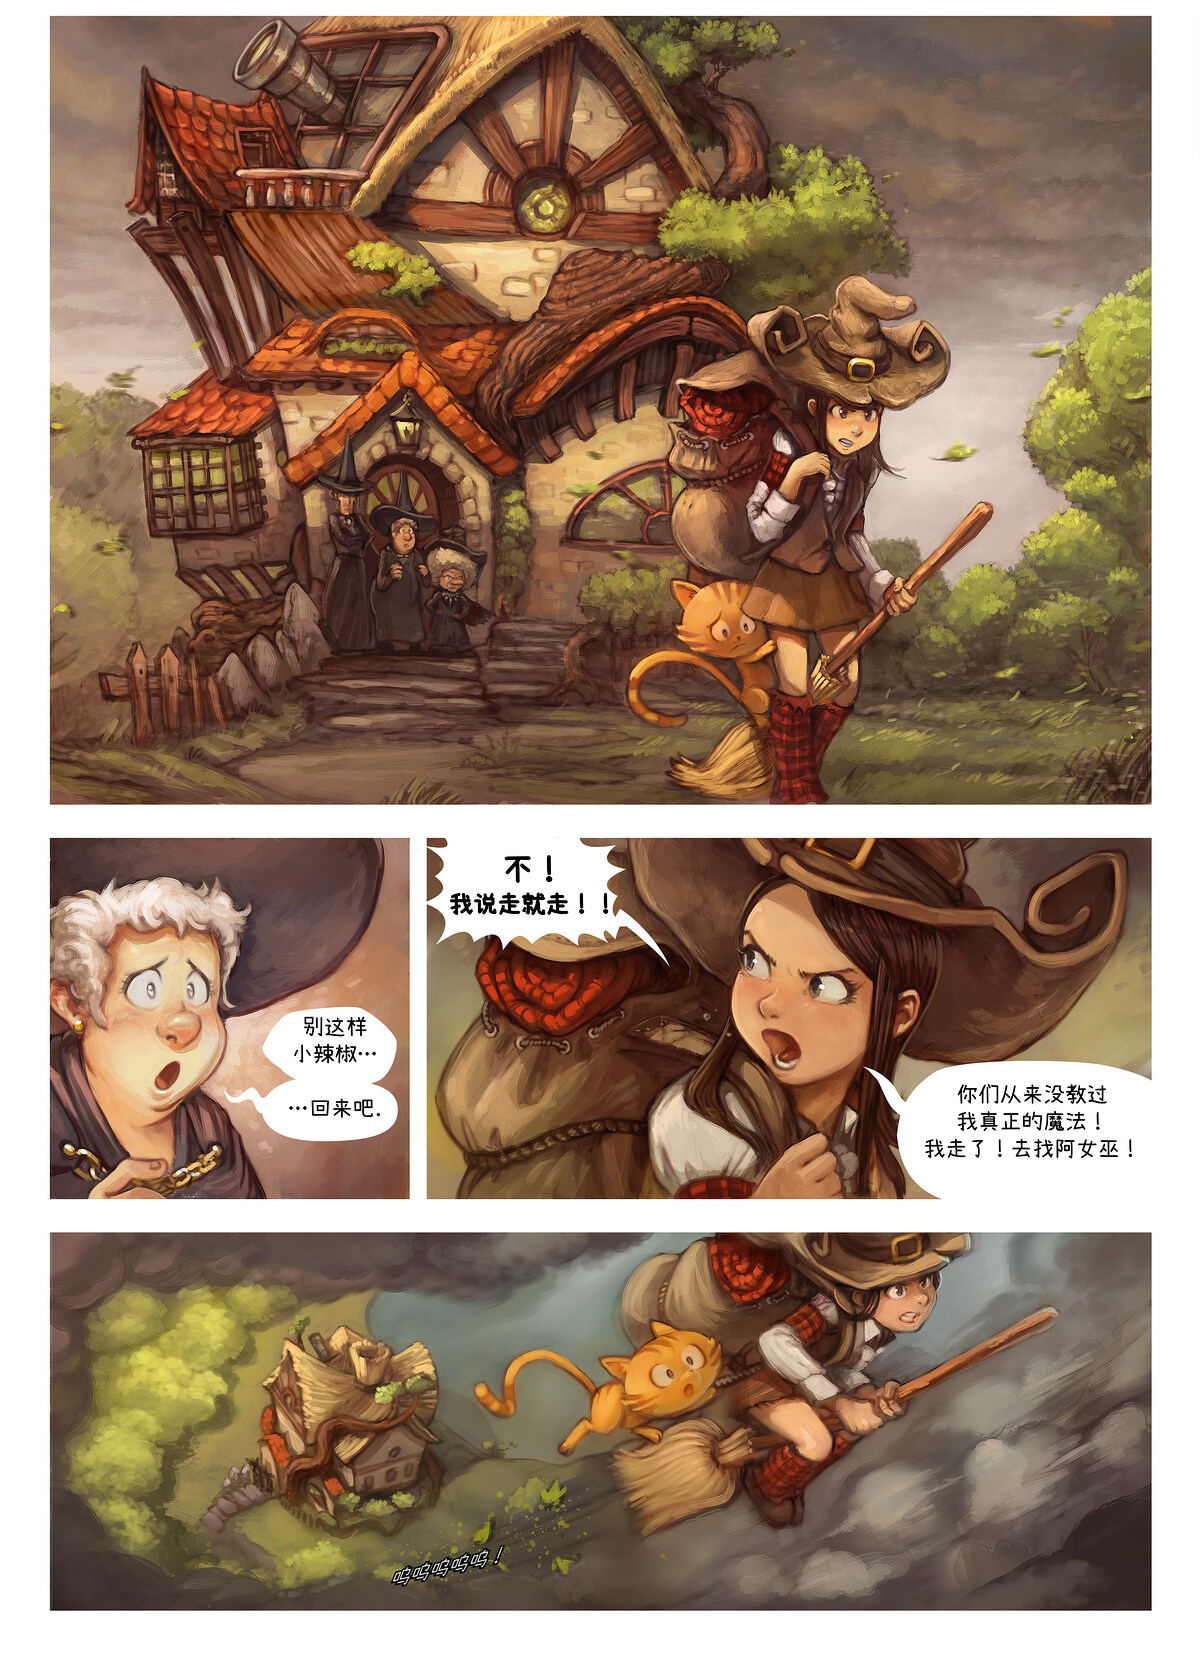 A webcomic page of Pepper&Carrot, 漫画全集 17 [cn], 页面 1